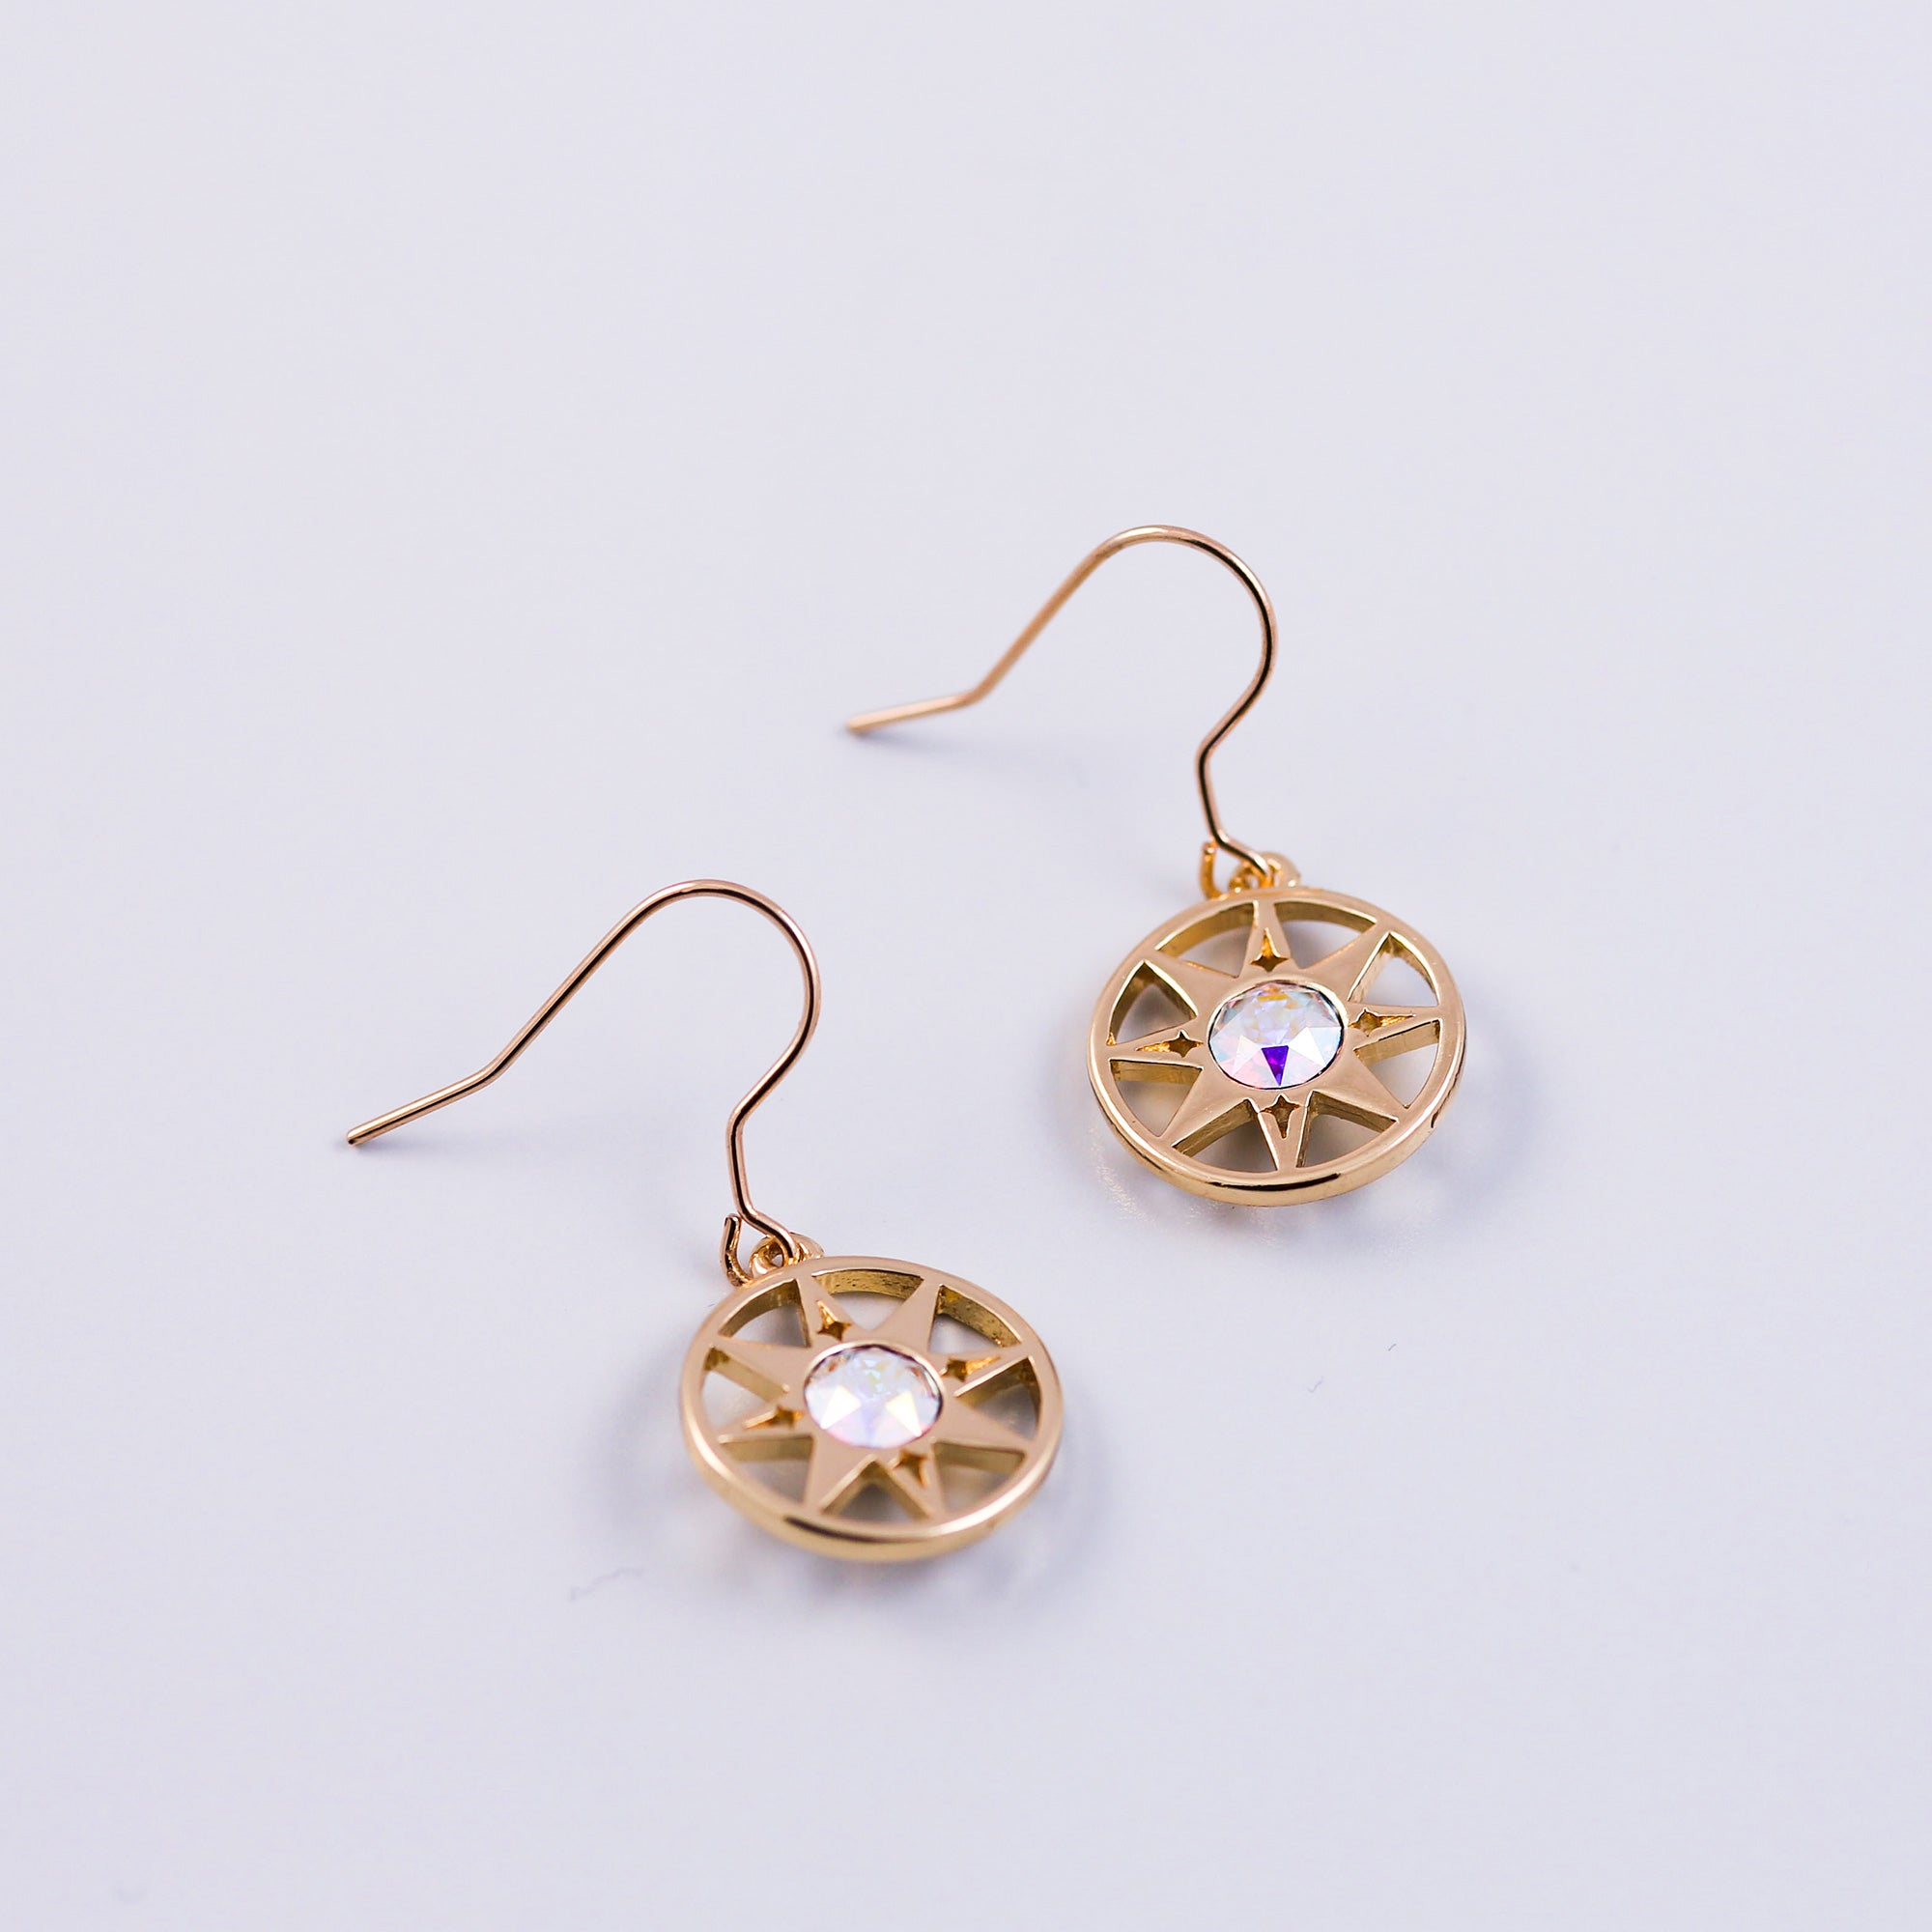 Rose Gold & Crystal AB |Compass North Star |Star Earrings |Wedding Set